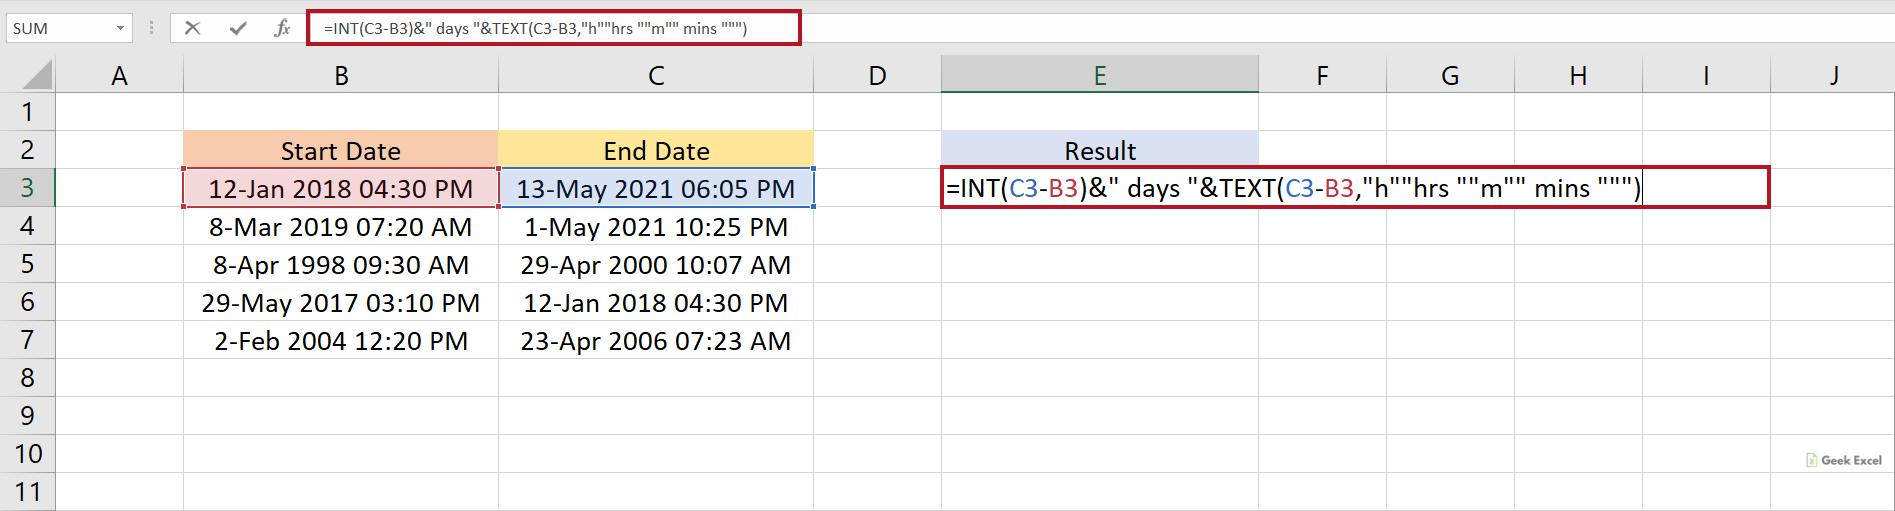 Excel Formulas to Calculate Days, Hours & Minutes between Two Dates